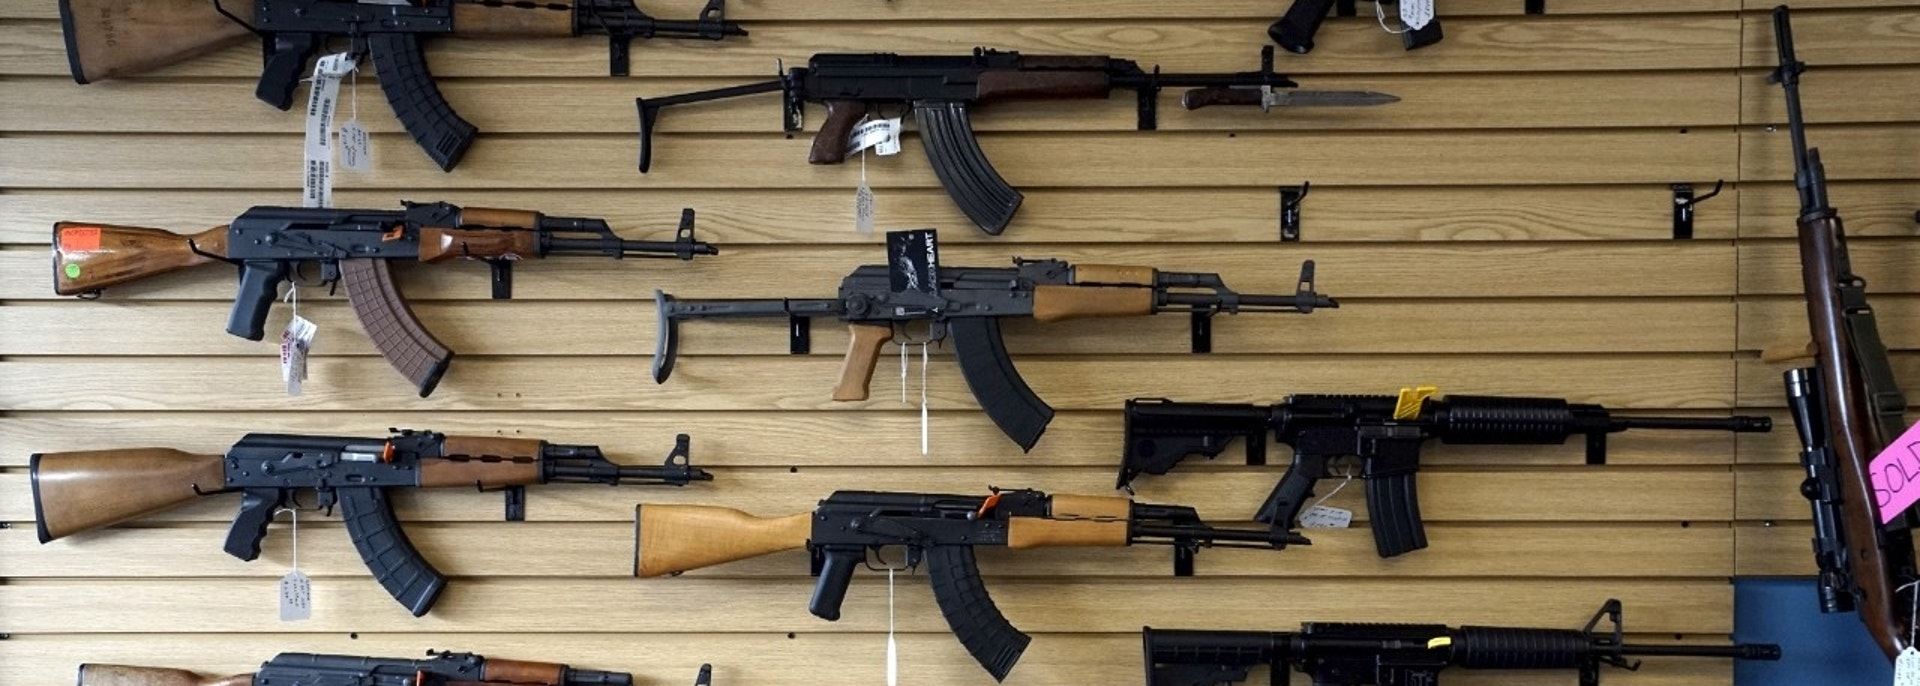 A selection of AK and AR rifles are seen for sale at the Pony Express Firearms shop in Parker, Colorado December 7, 2015. Many Americans are stocking up on weapons after the country's worst mass shooting in three years. Gun retailers are reporting surging sales, with customers saying they want to keep handguns and rifles at hand for self-defense in the event of another attack. REUTERS/Rick Wilking - GF10000257913